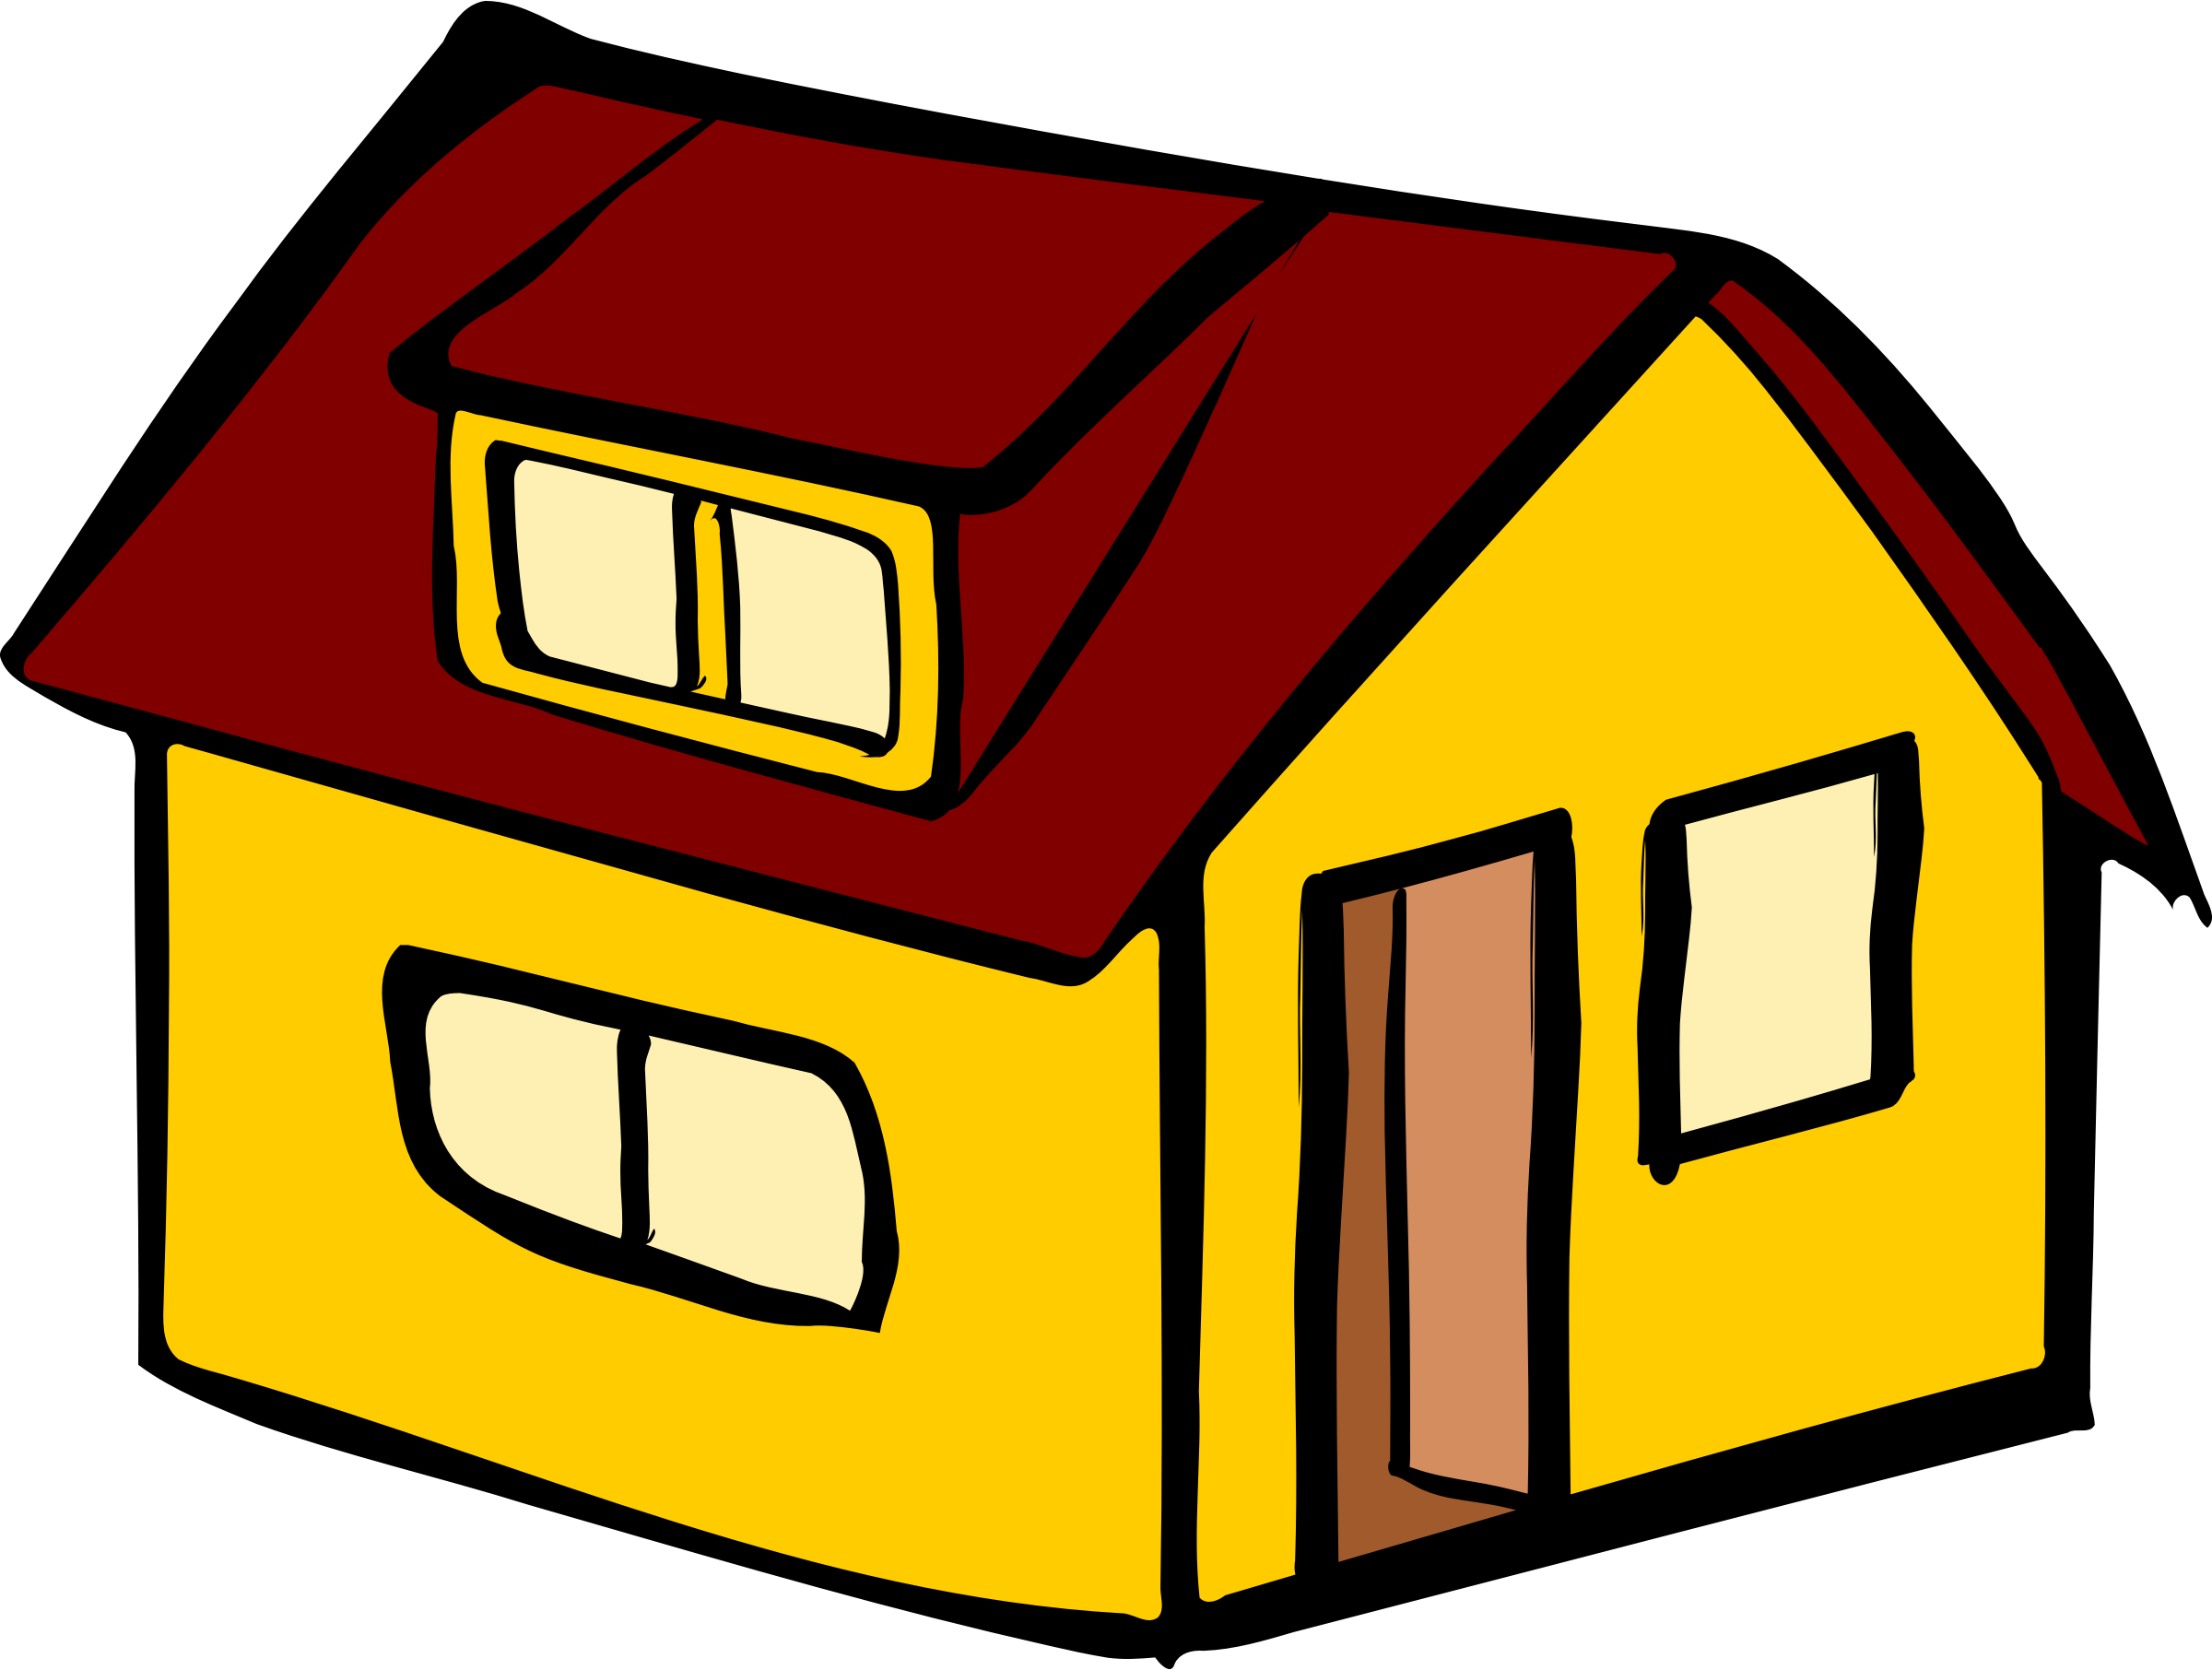 House light clipart